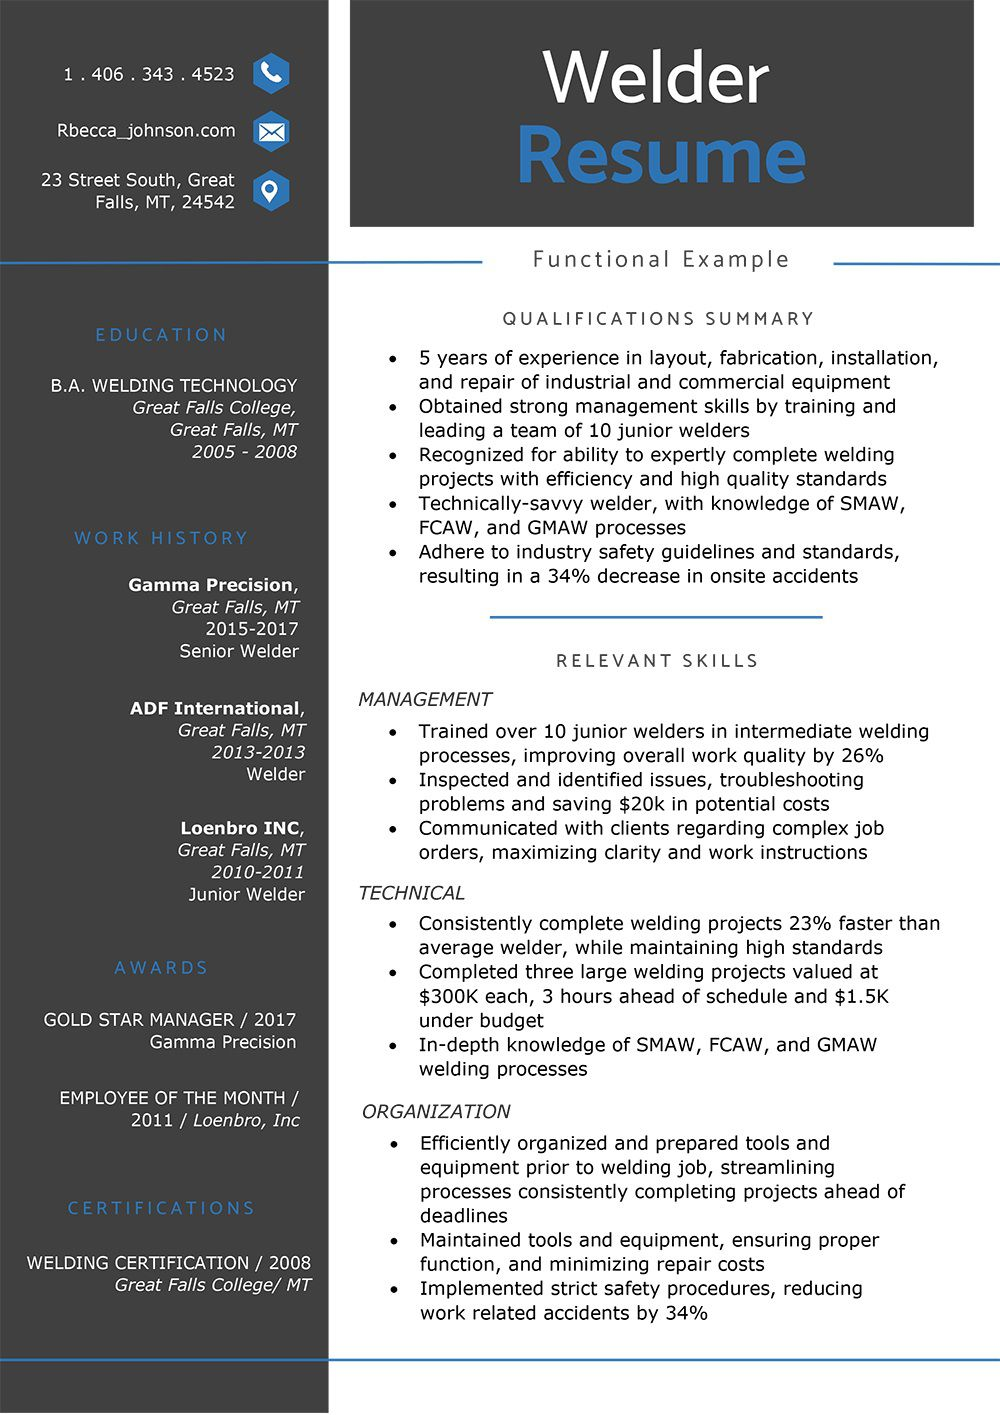 free functional resume template addictionary core for word remarkable ideas human Resume Core Functional Resume Template For Word Free